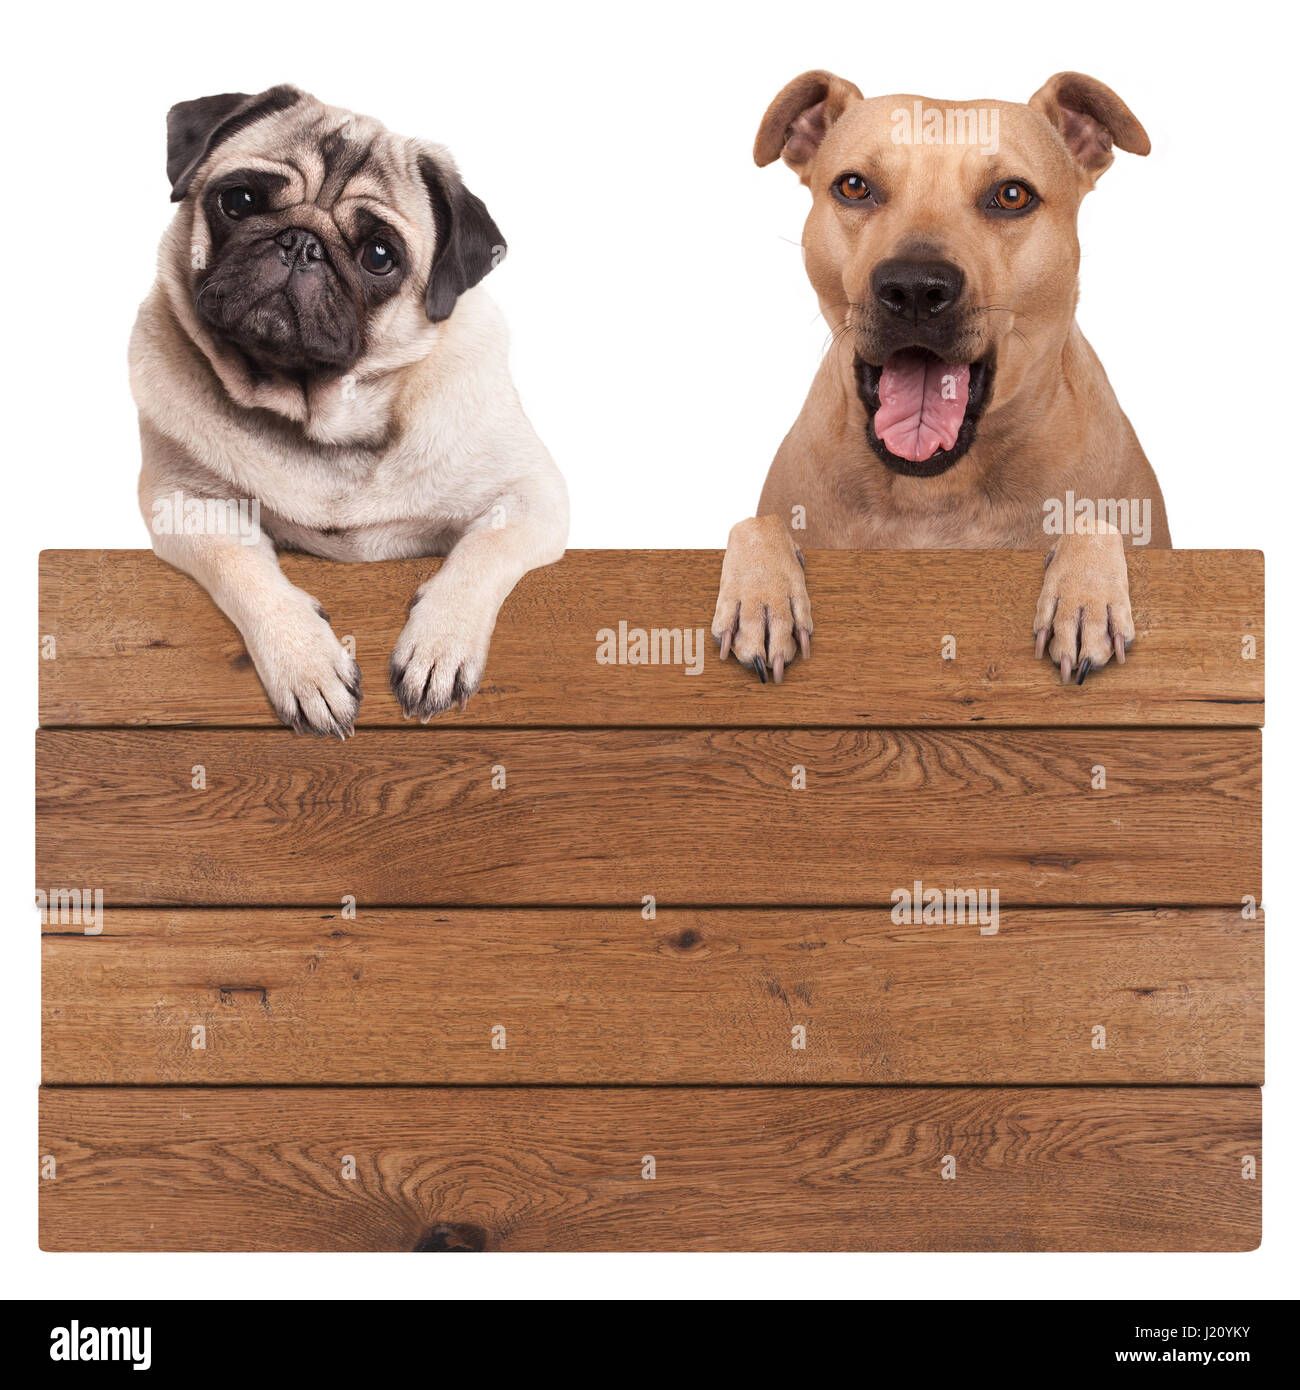 cute dogs, terrier and pug dog, hanging with paws on blank wooden promotional board sign, isolated on white background Stock Photo